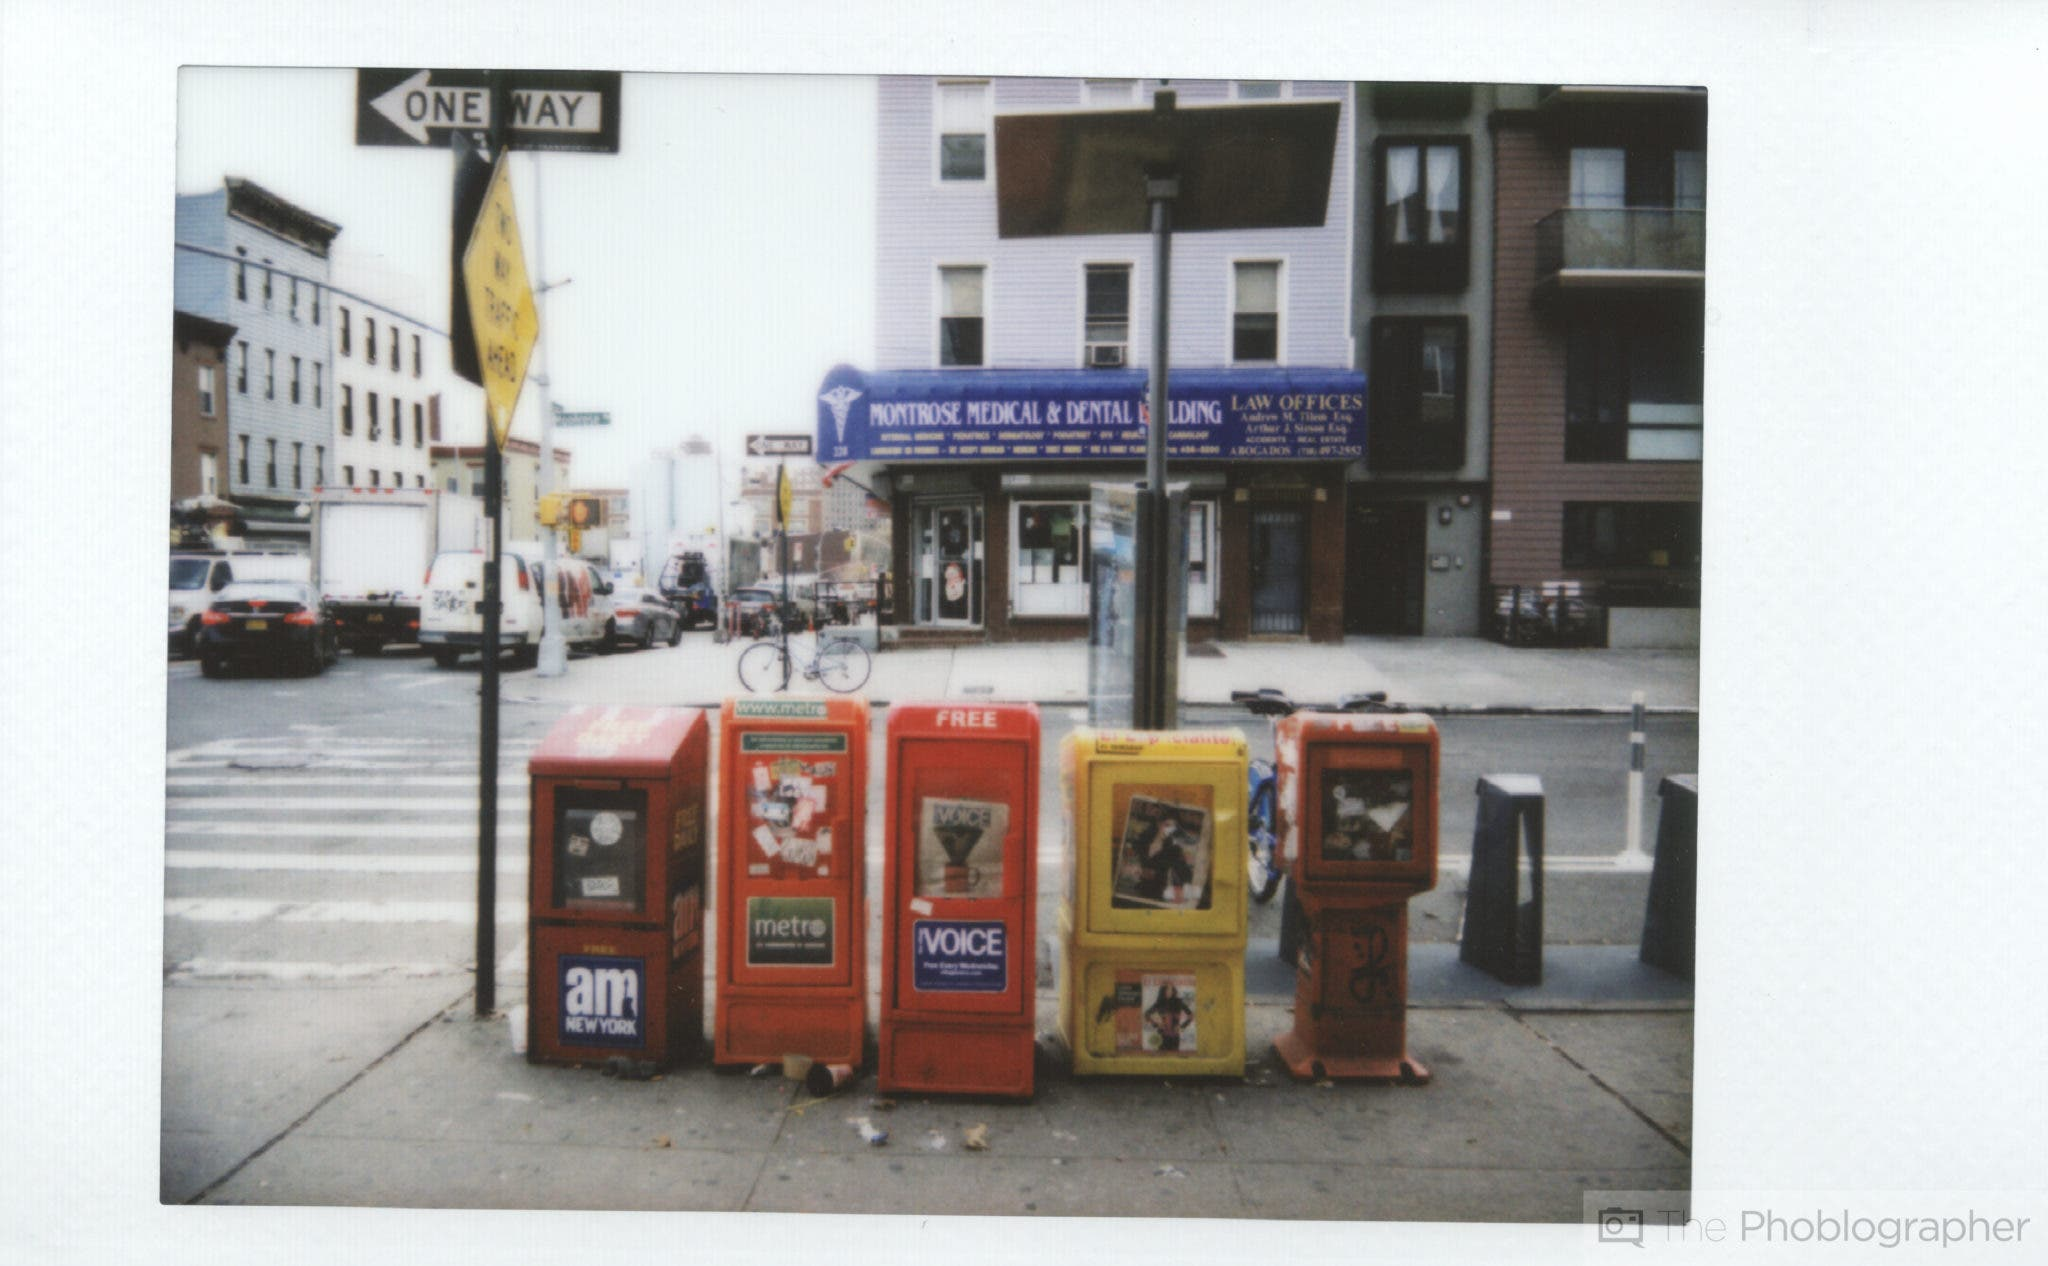 Chris Gampat The Phoblographer Fujifilm Instax Mini 70 scan montrose ave (1 of 1)